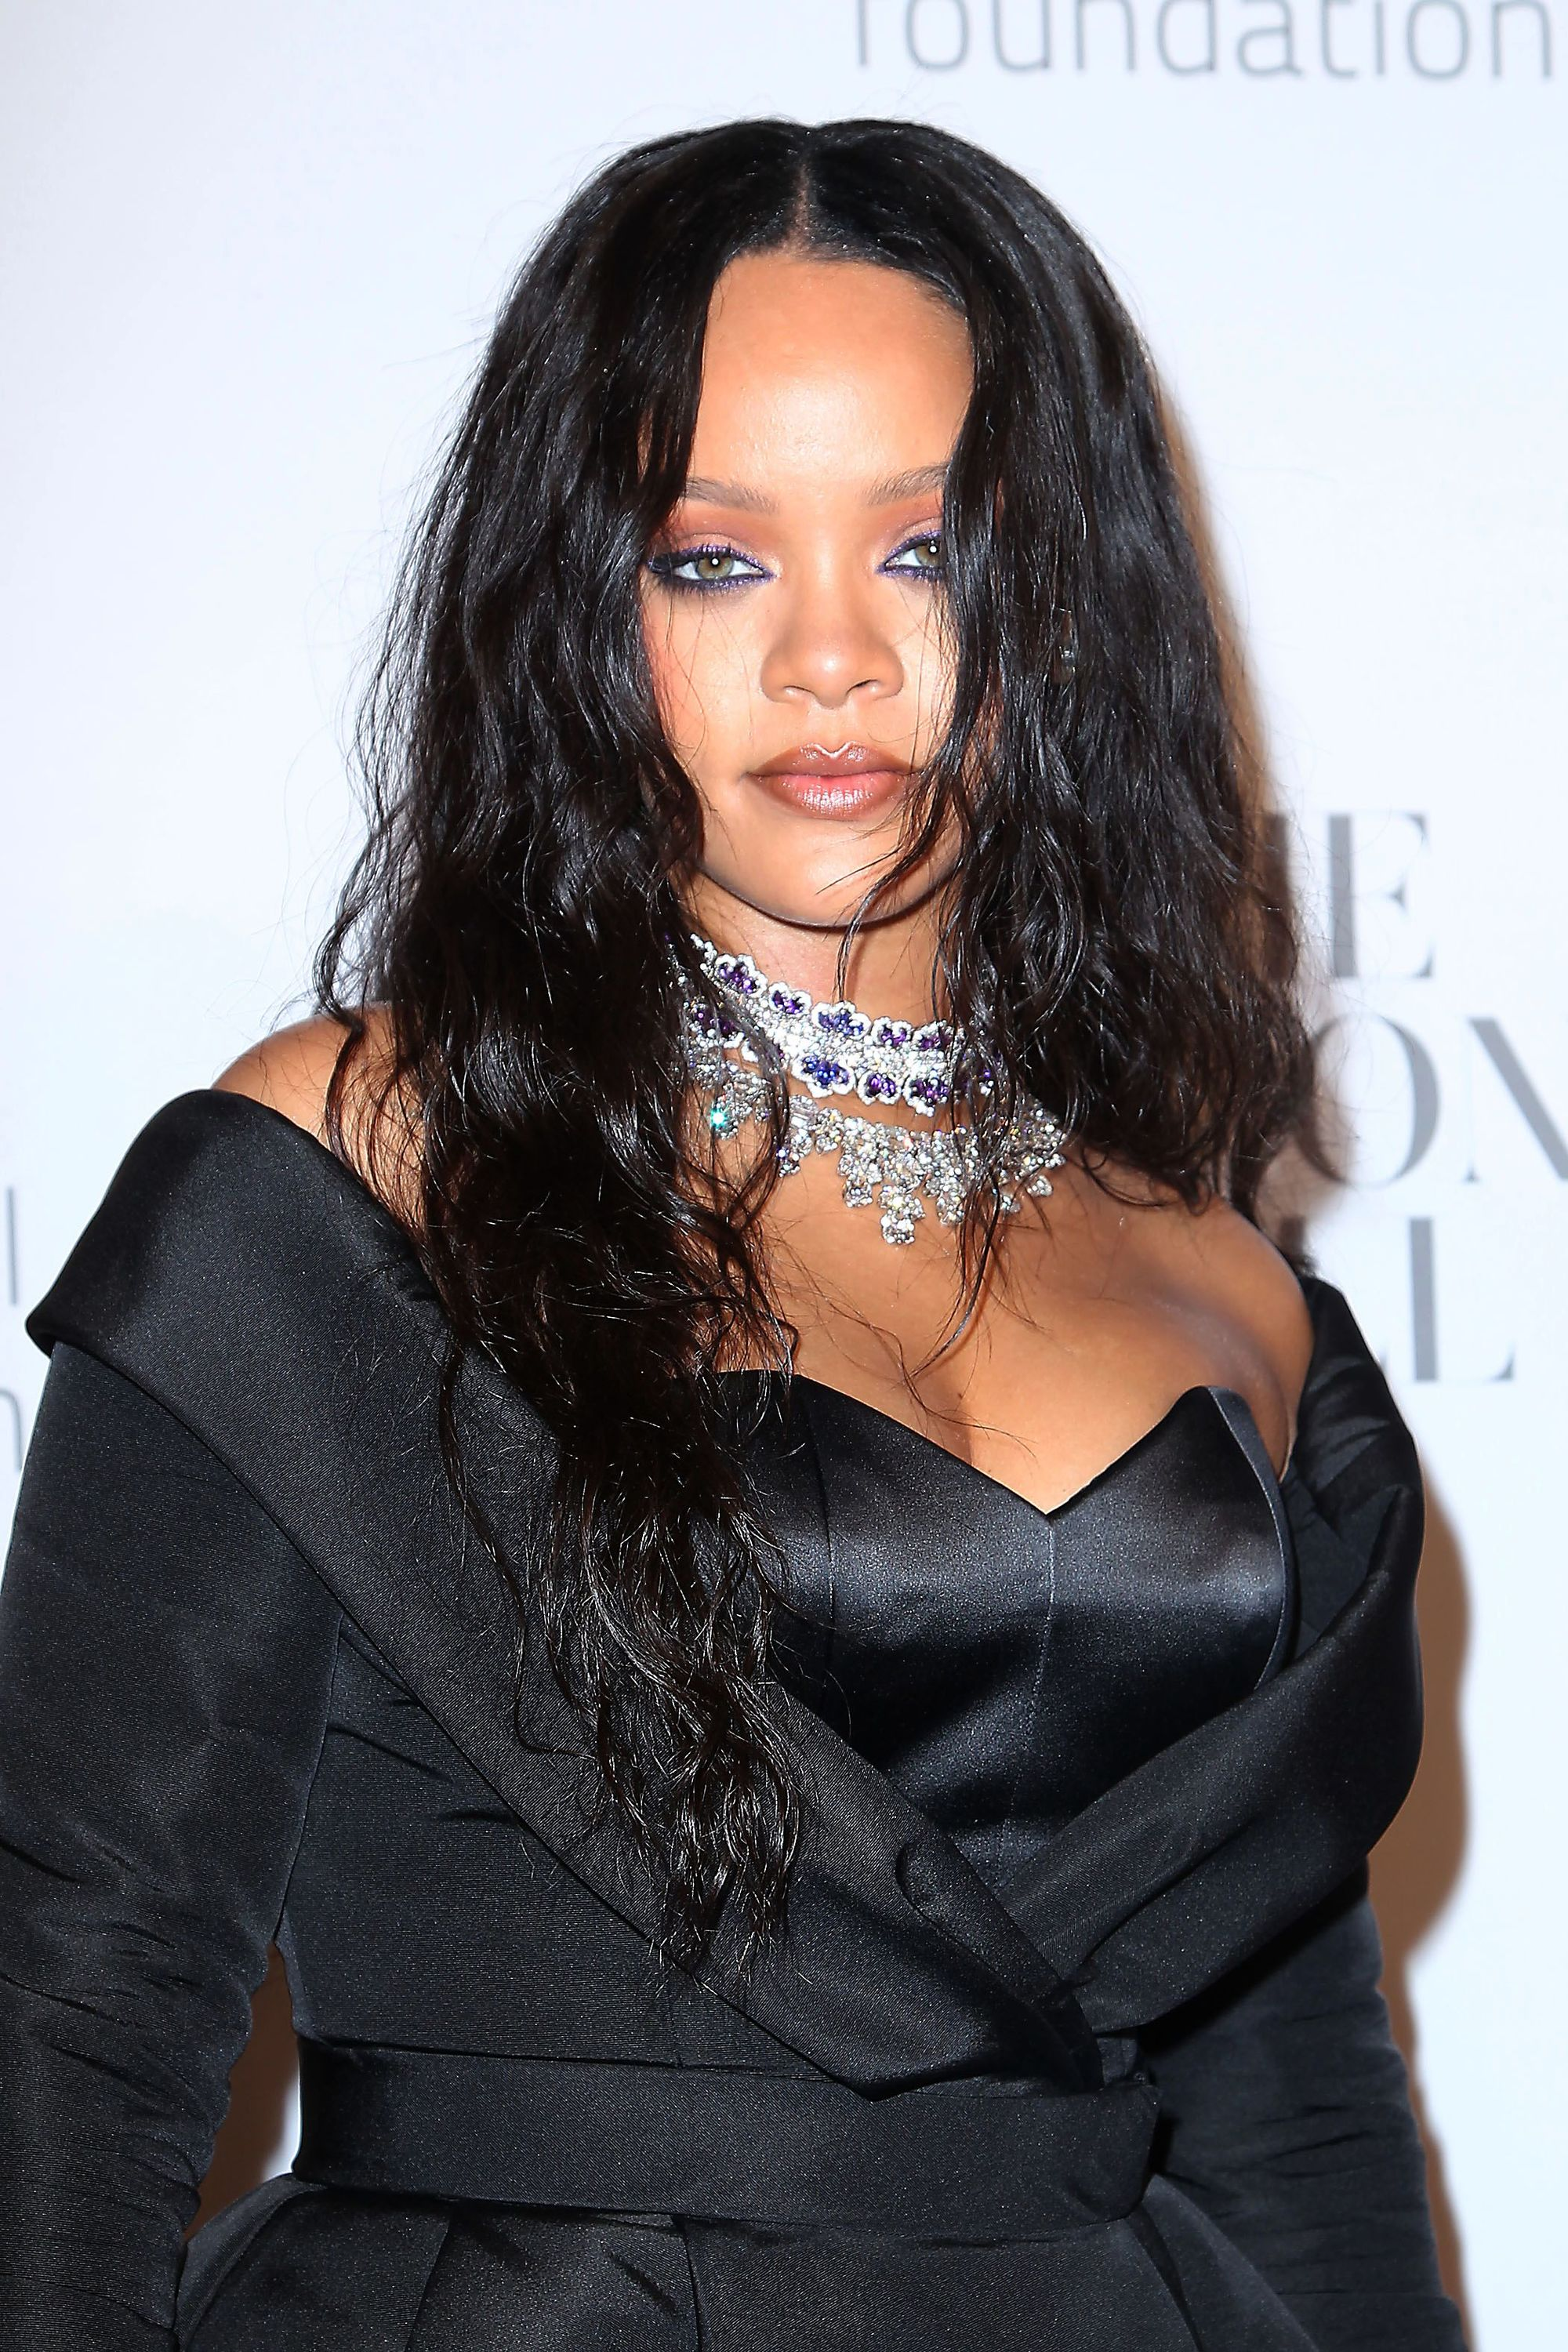 Red carpet hairstyles: Rihanna with black hair styled into loose beach waves